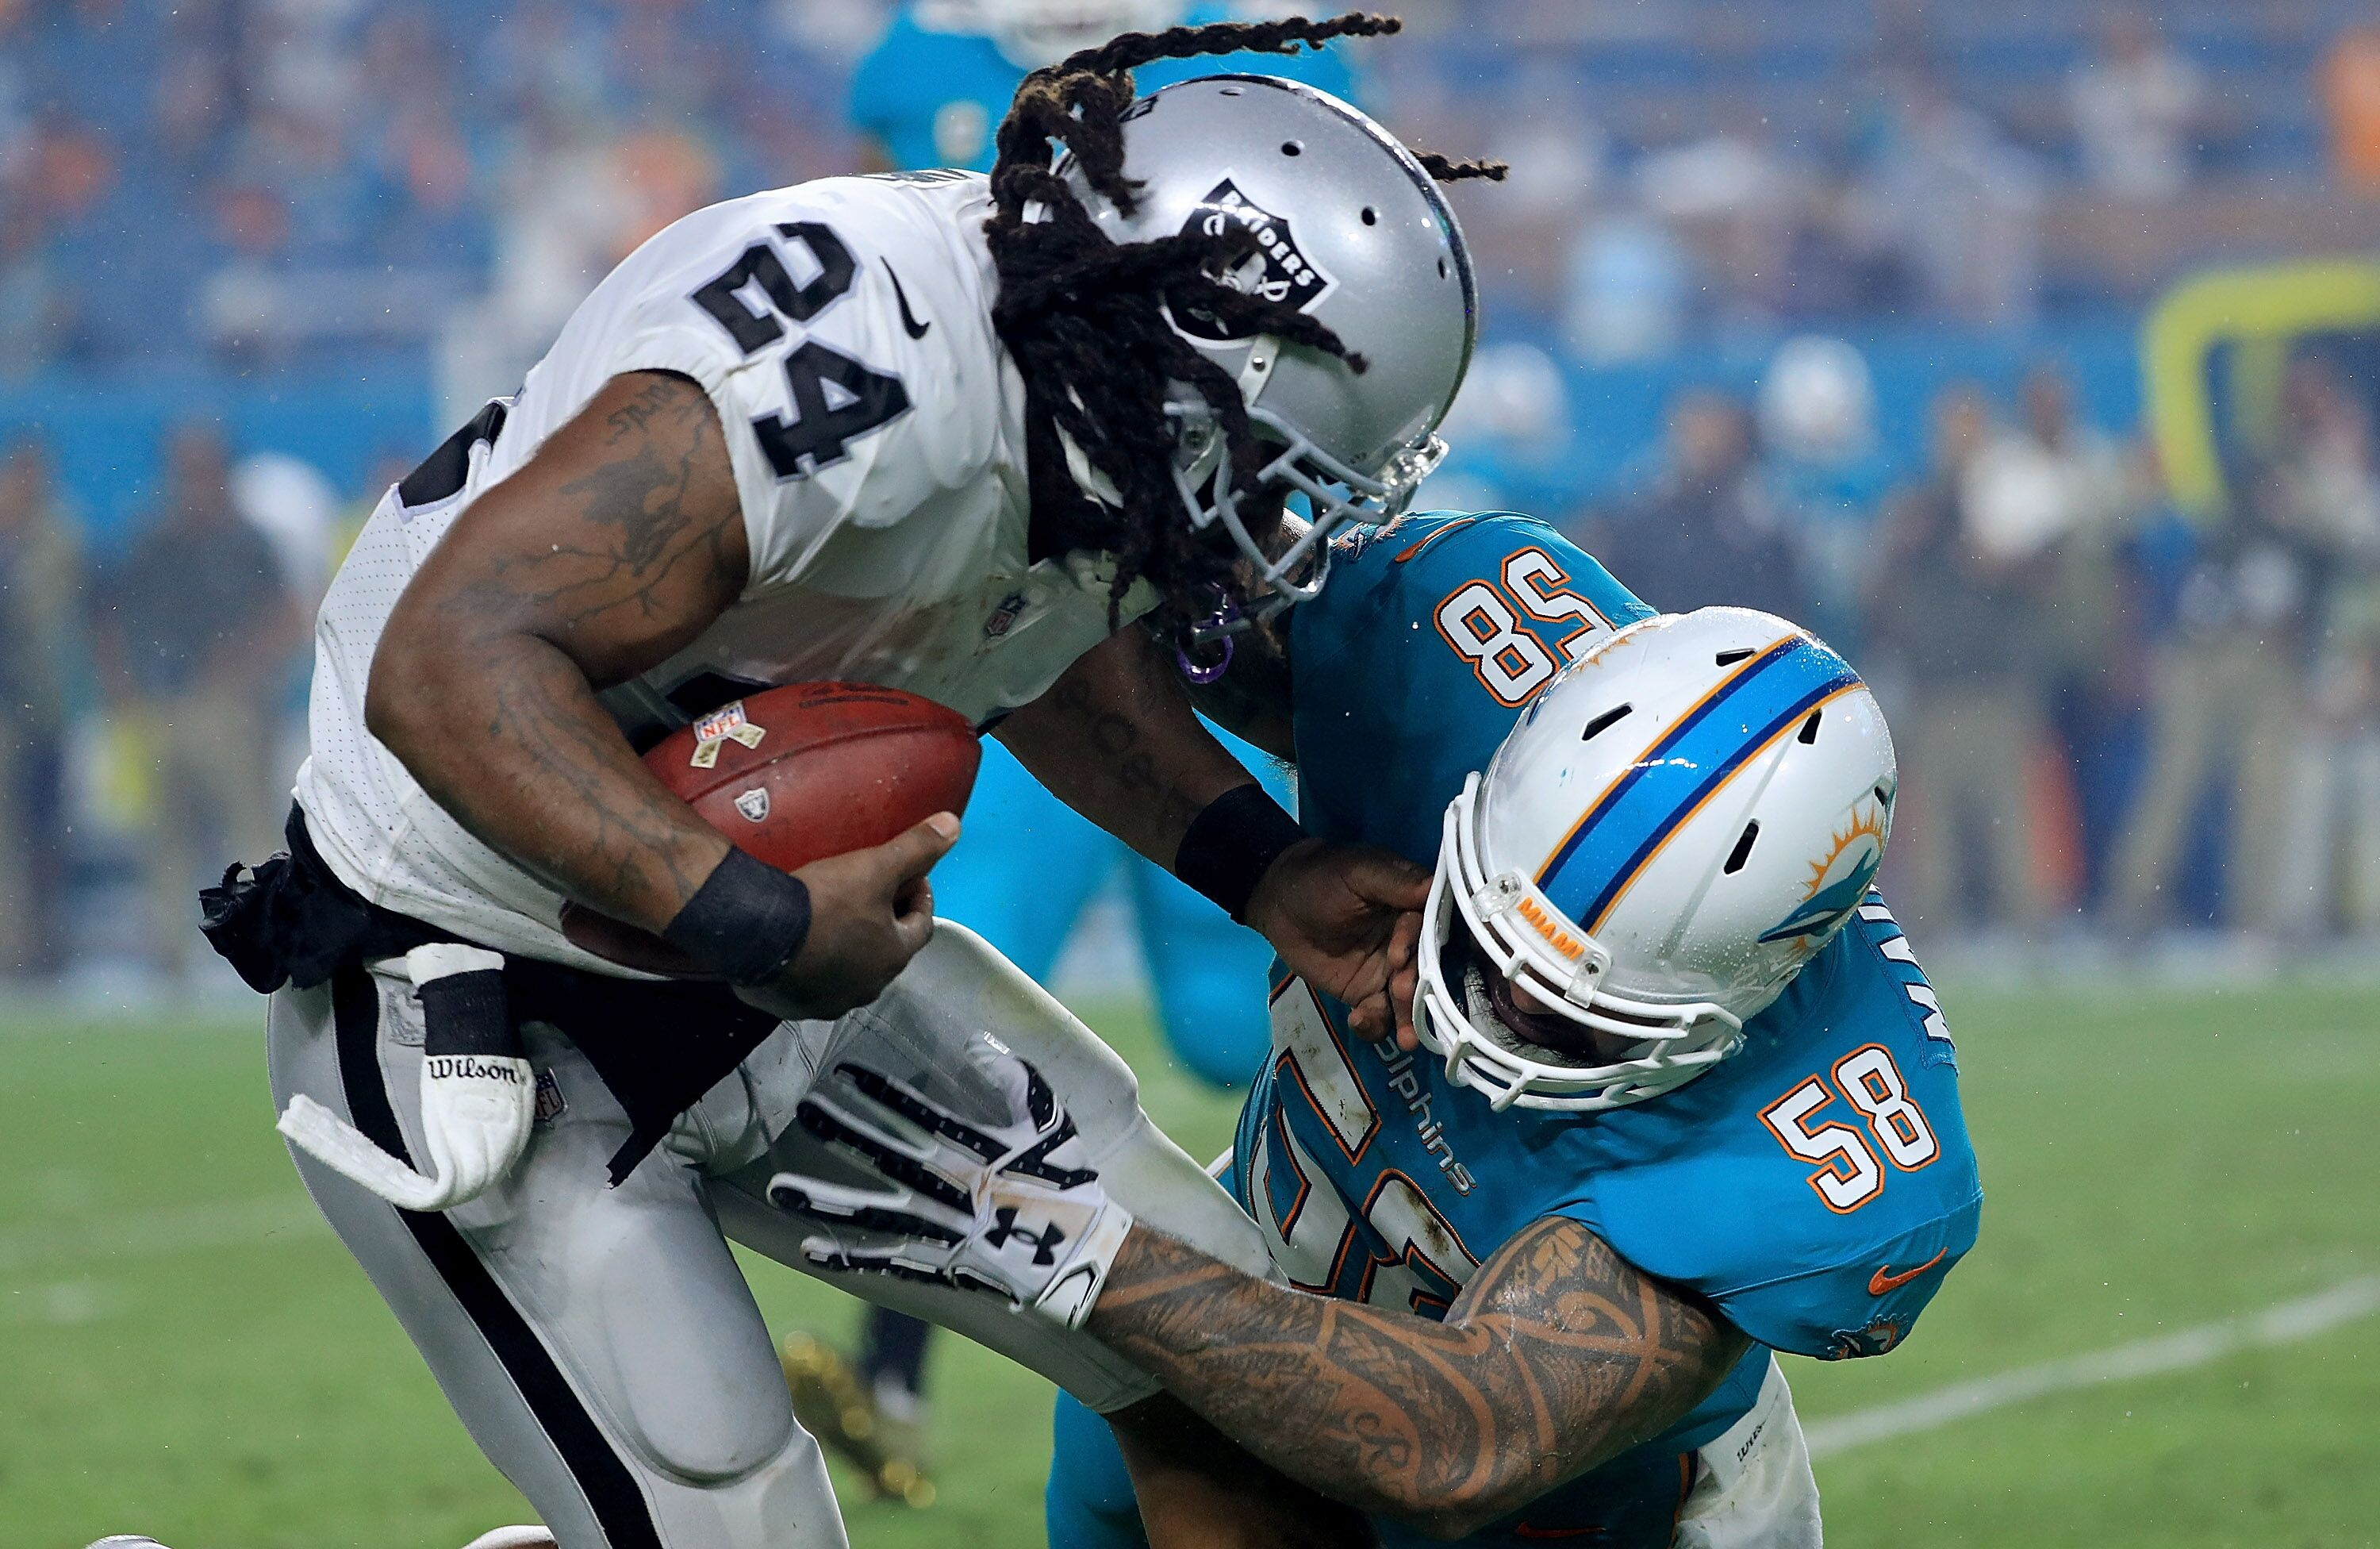 Oakland Raiders at Miami Dolphins: Highlights, score and recap